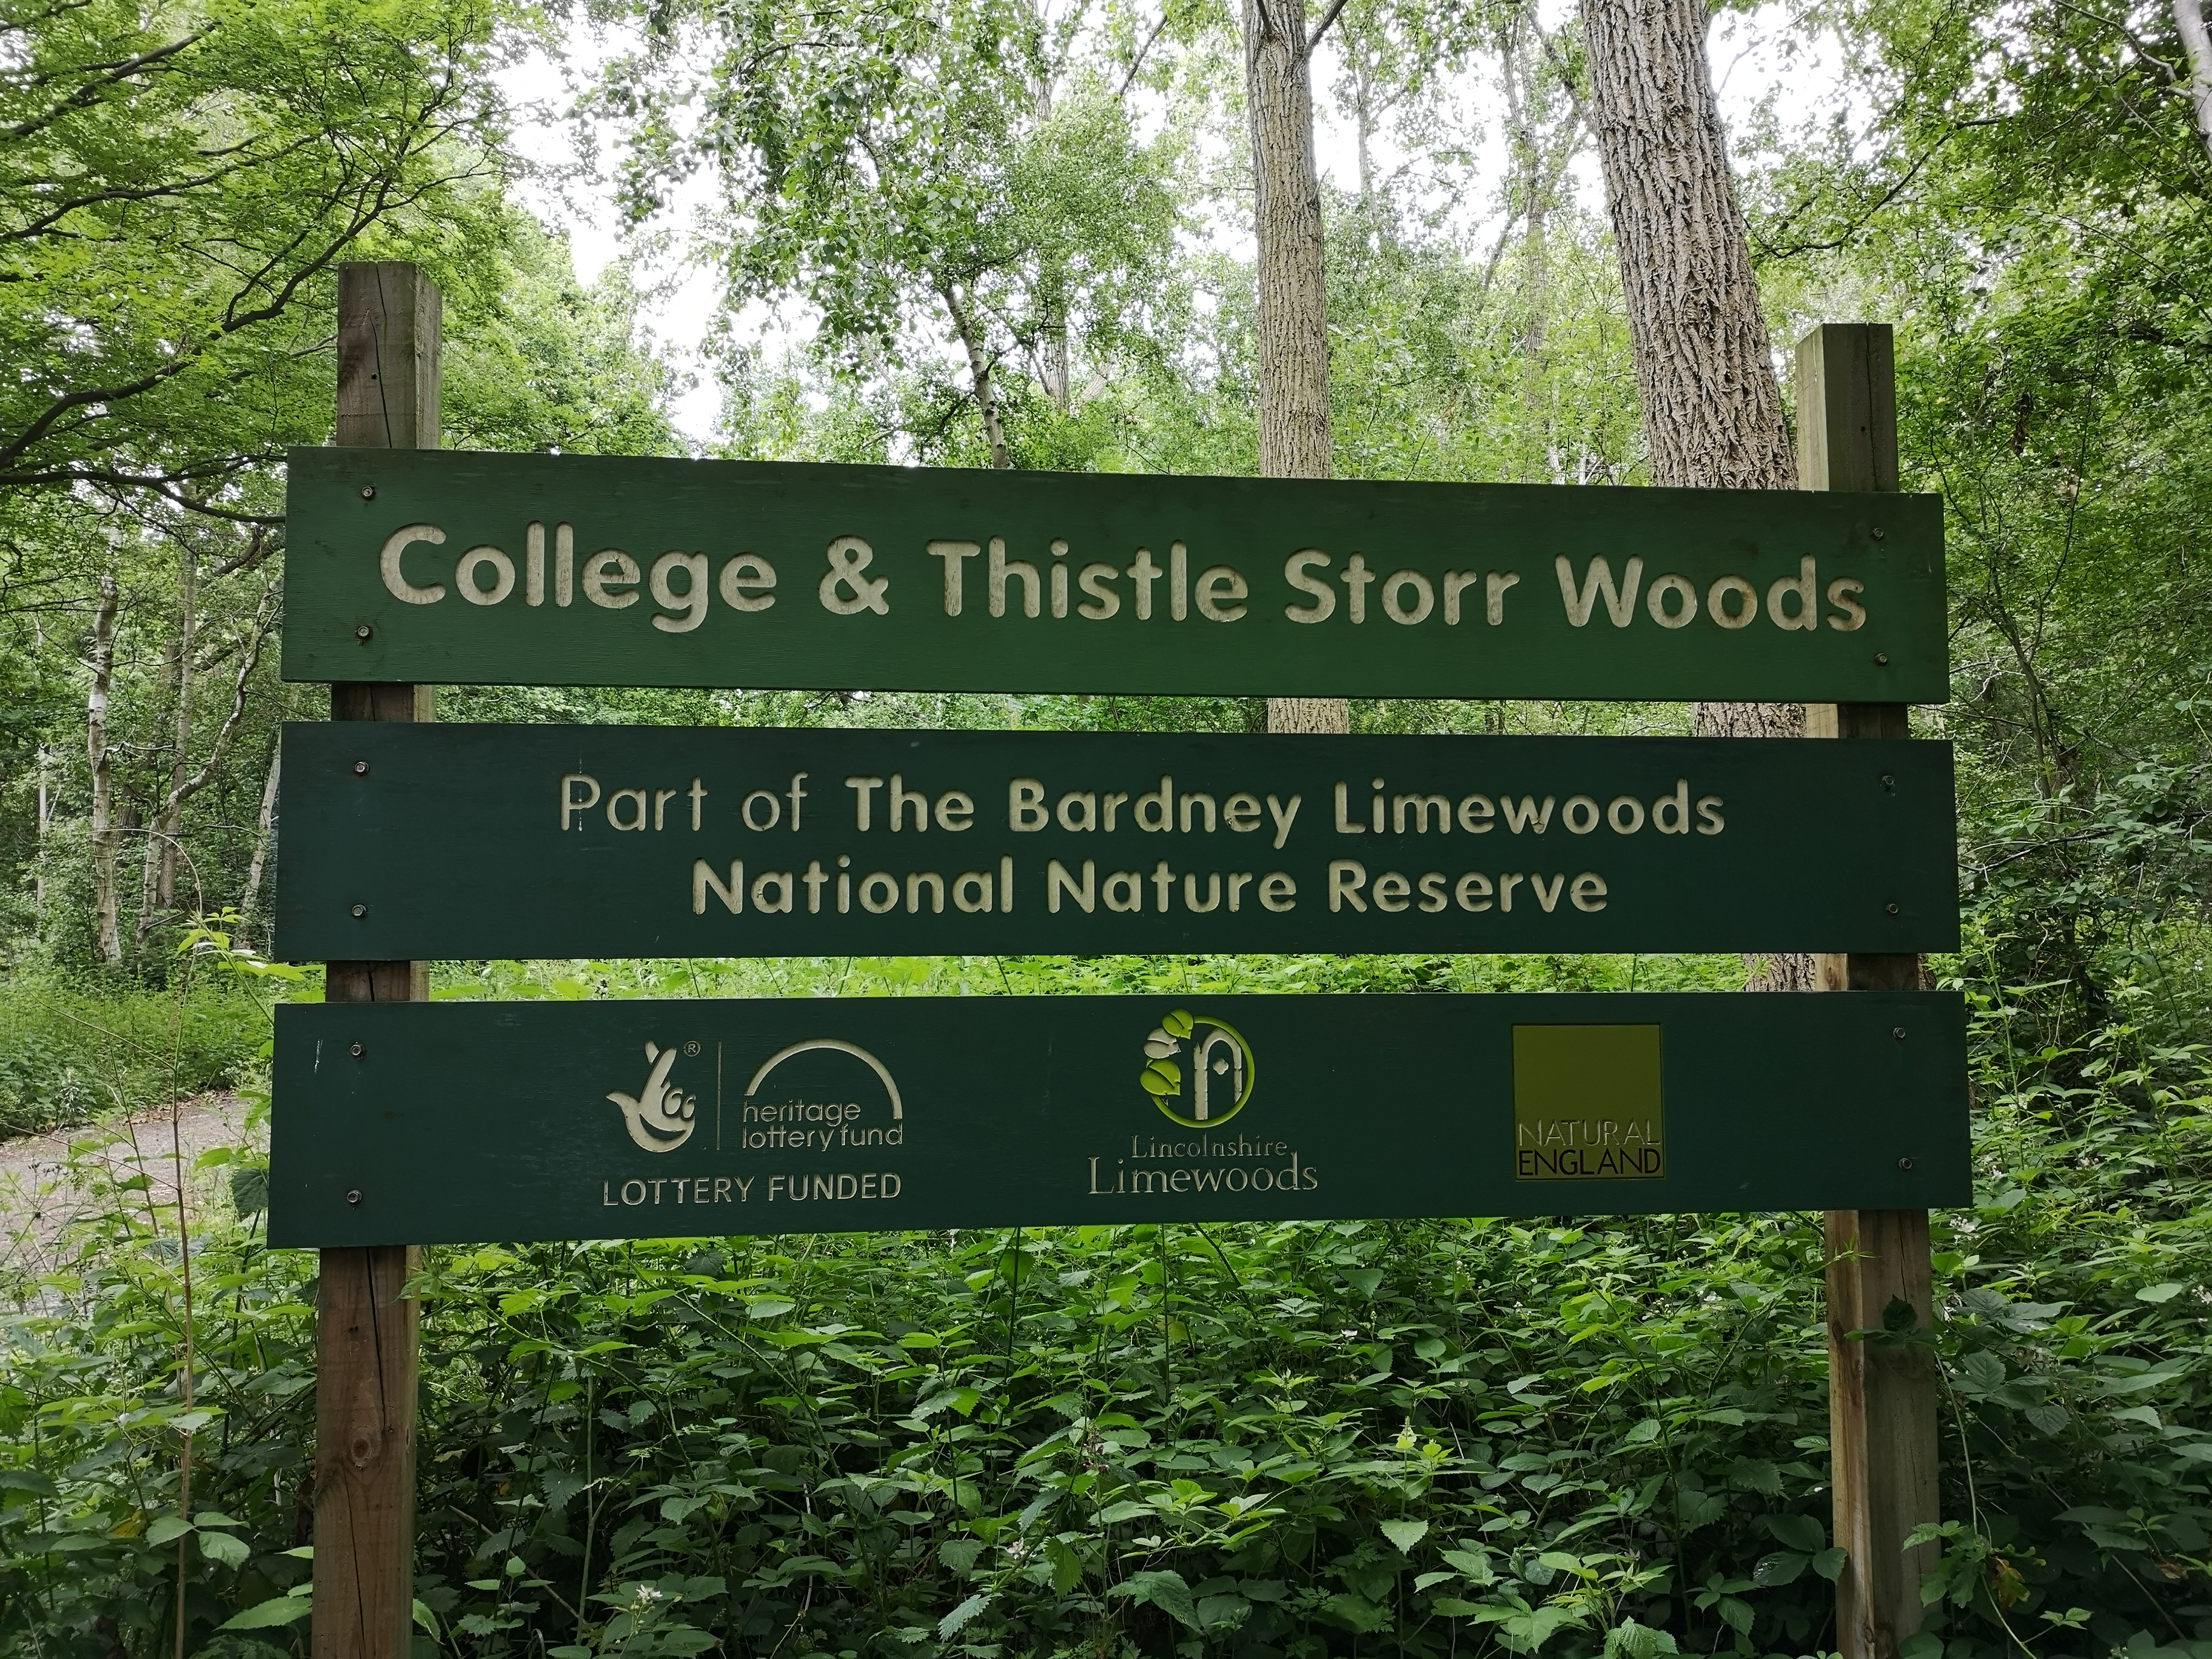 Bardney Limewoods National Nature Reserve- College & Thistle Storr Wood